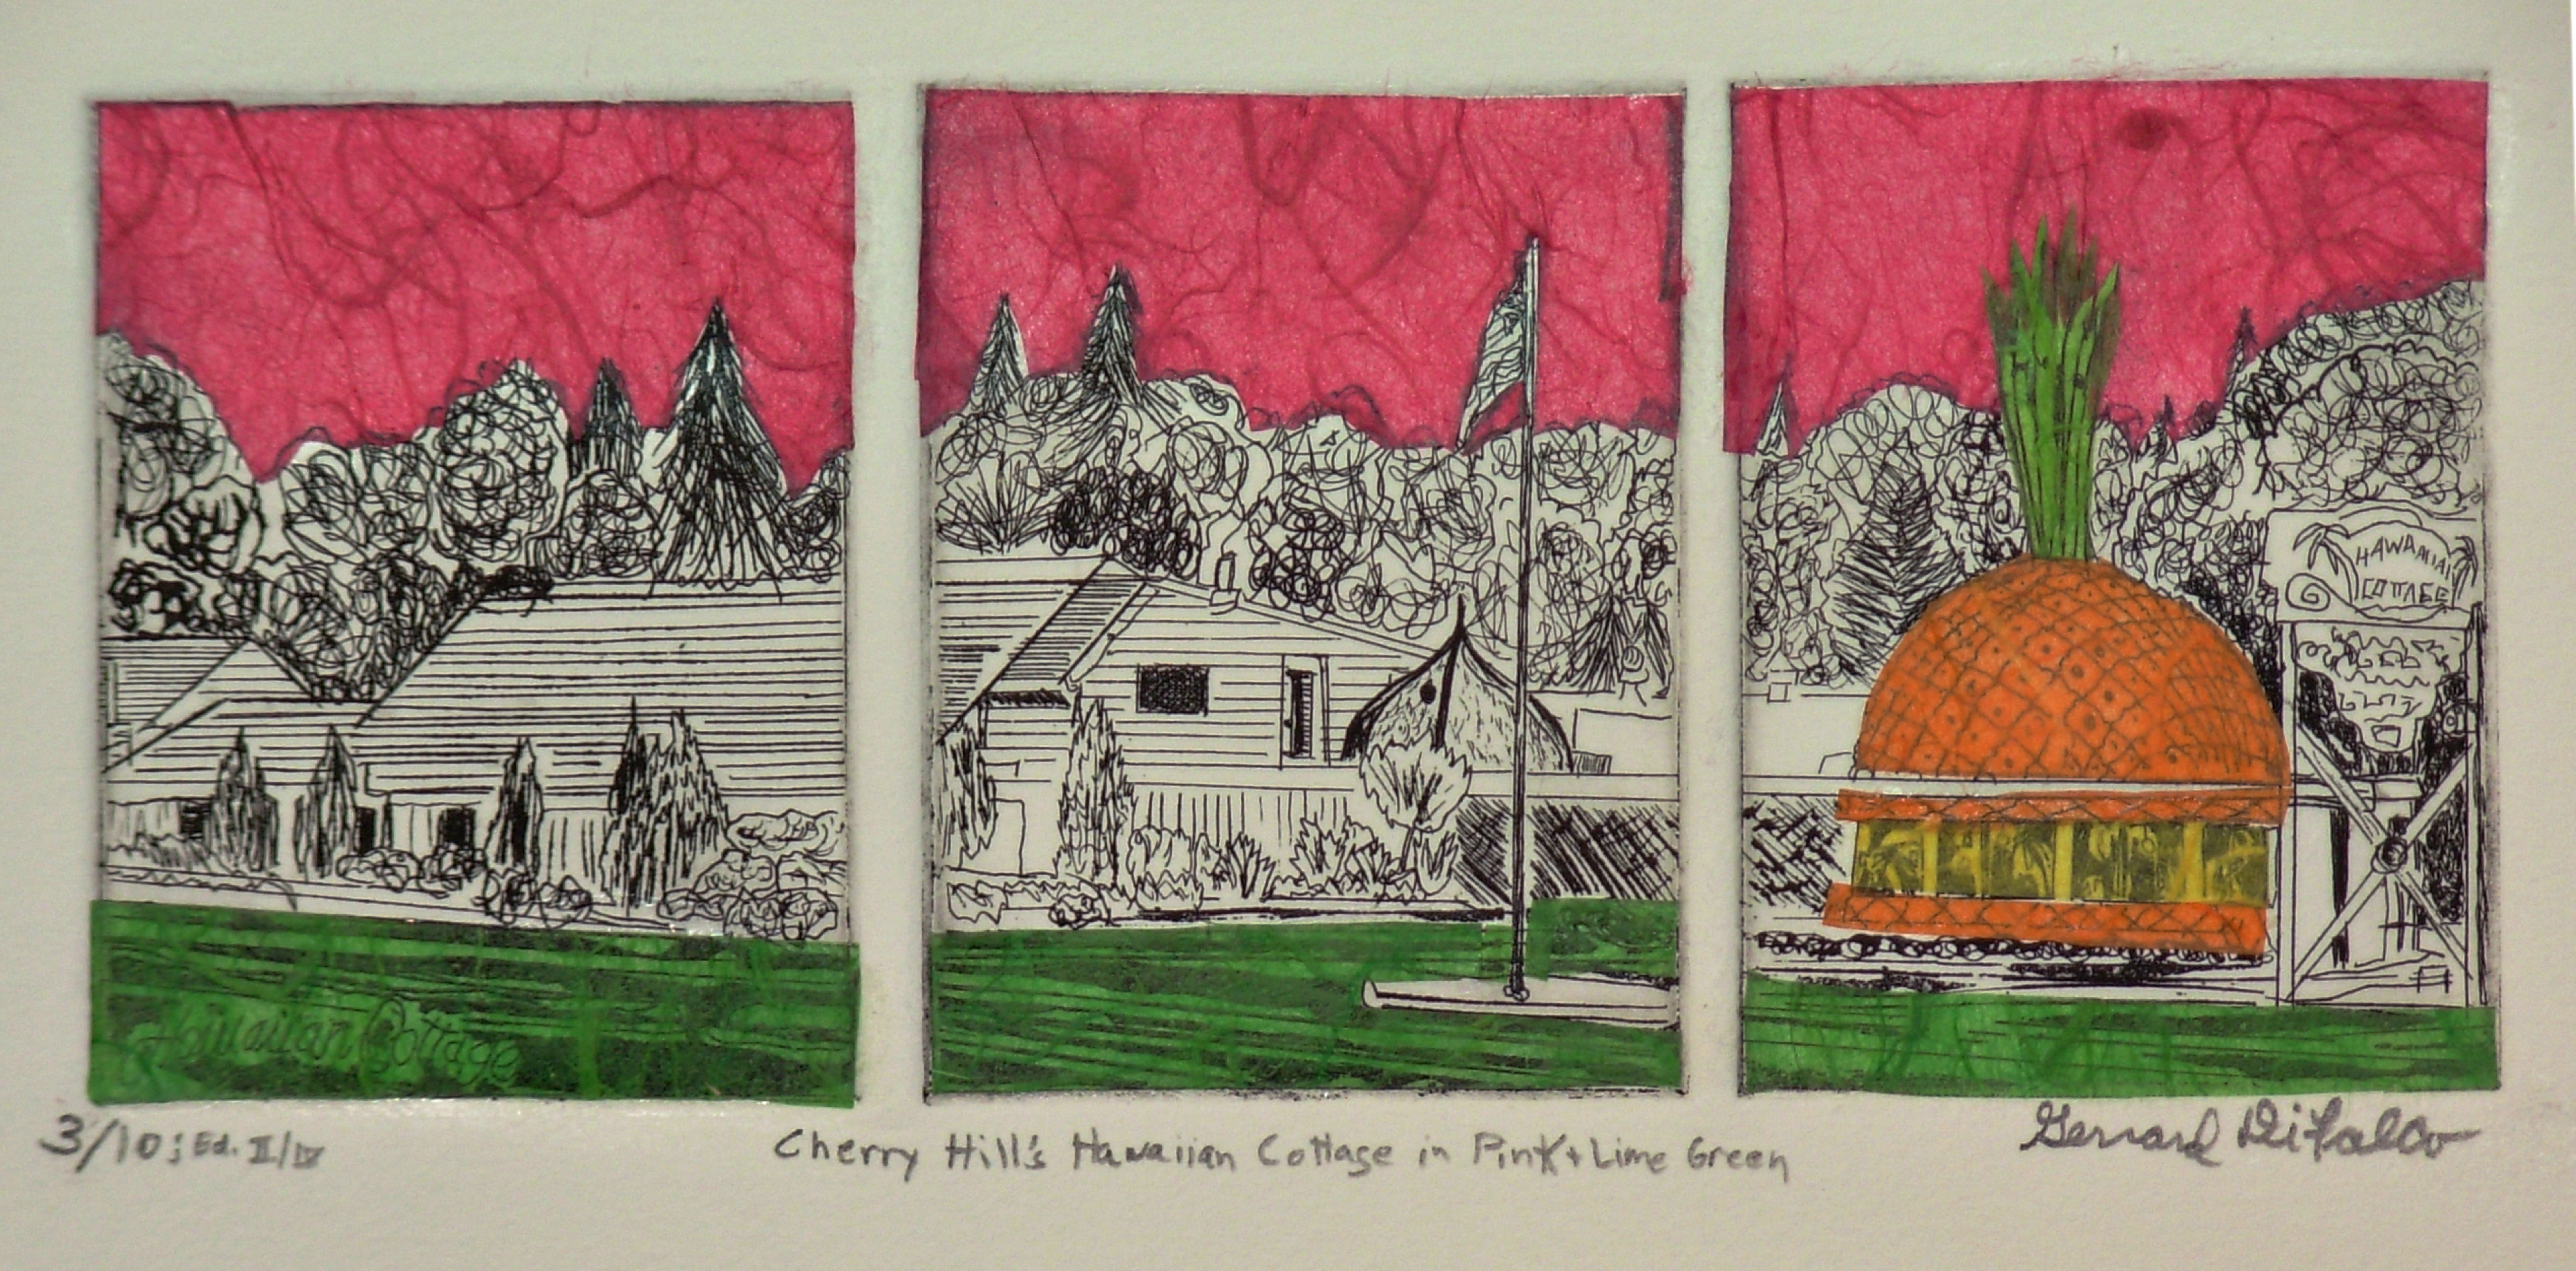 Jerry  Di Falco Artwork CHERRY HILLS HAWAIIAN COTTAGE IN PINK AND LIME GREEN, 2014 Etching, Americana